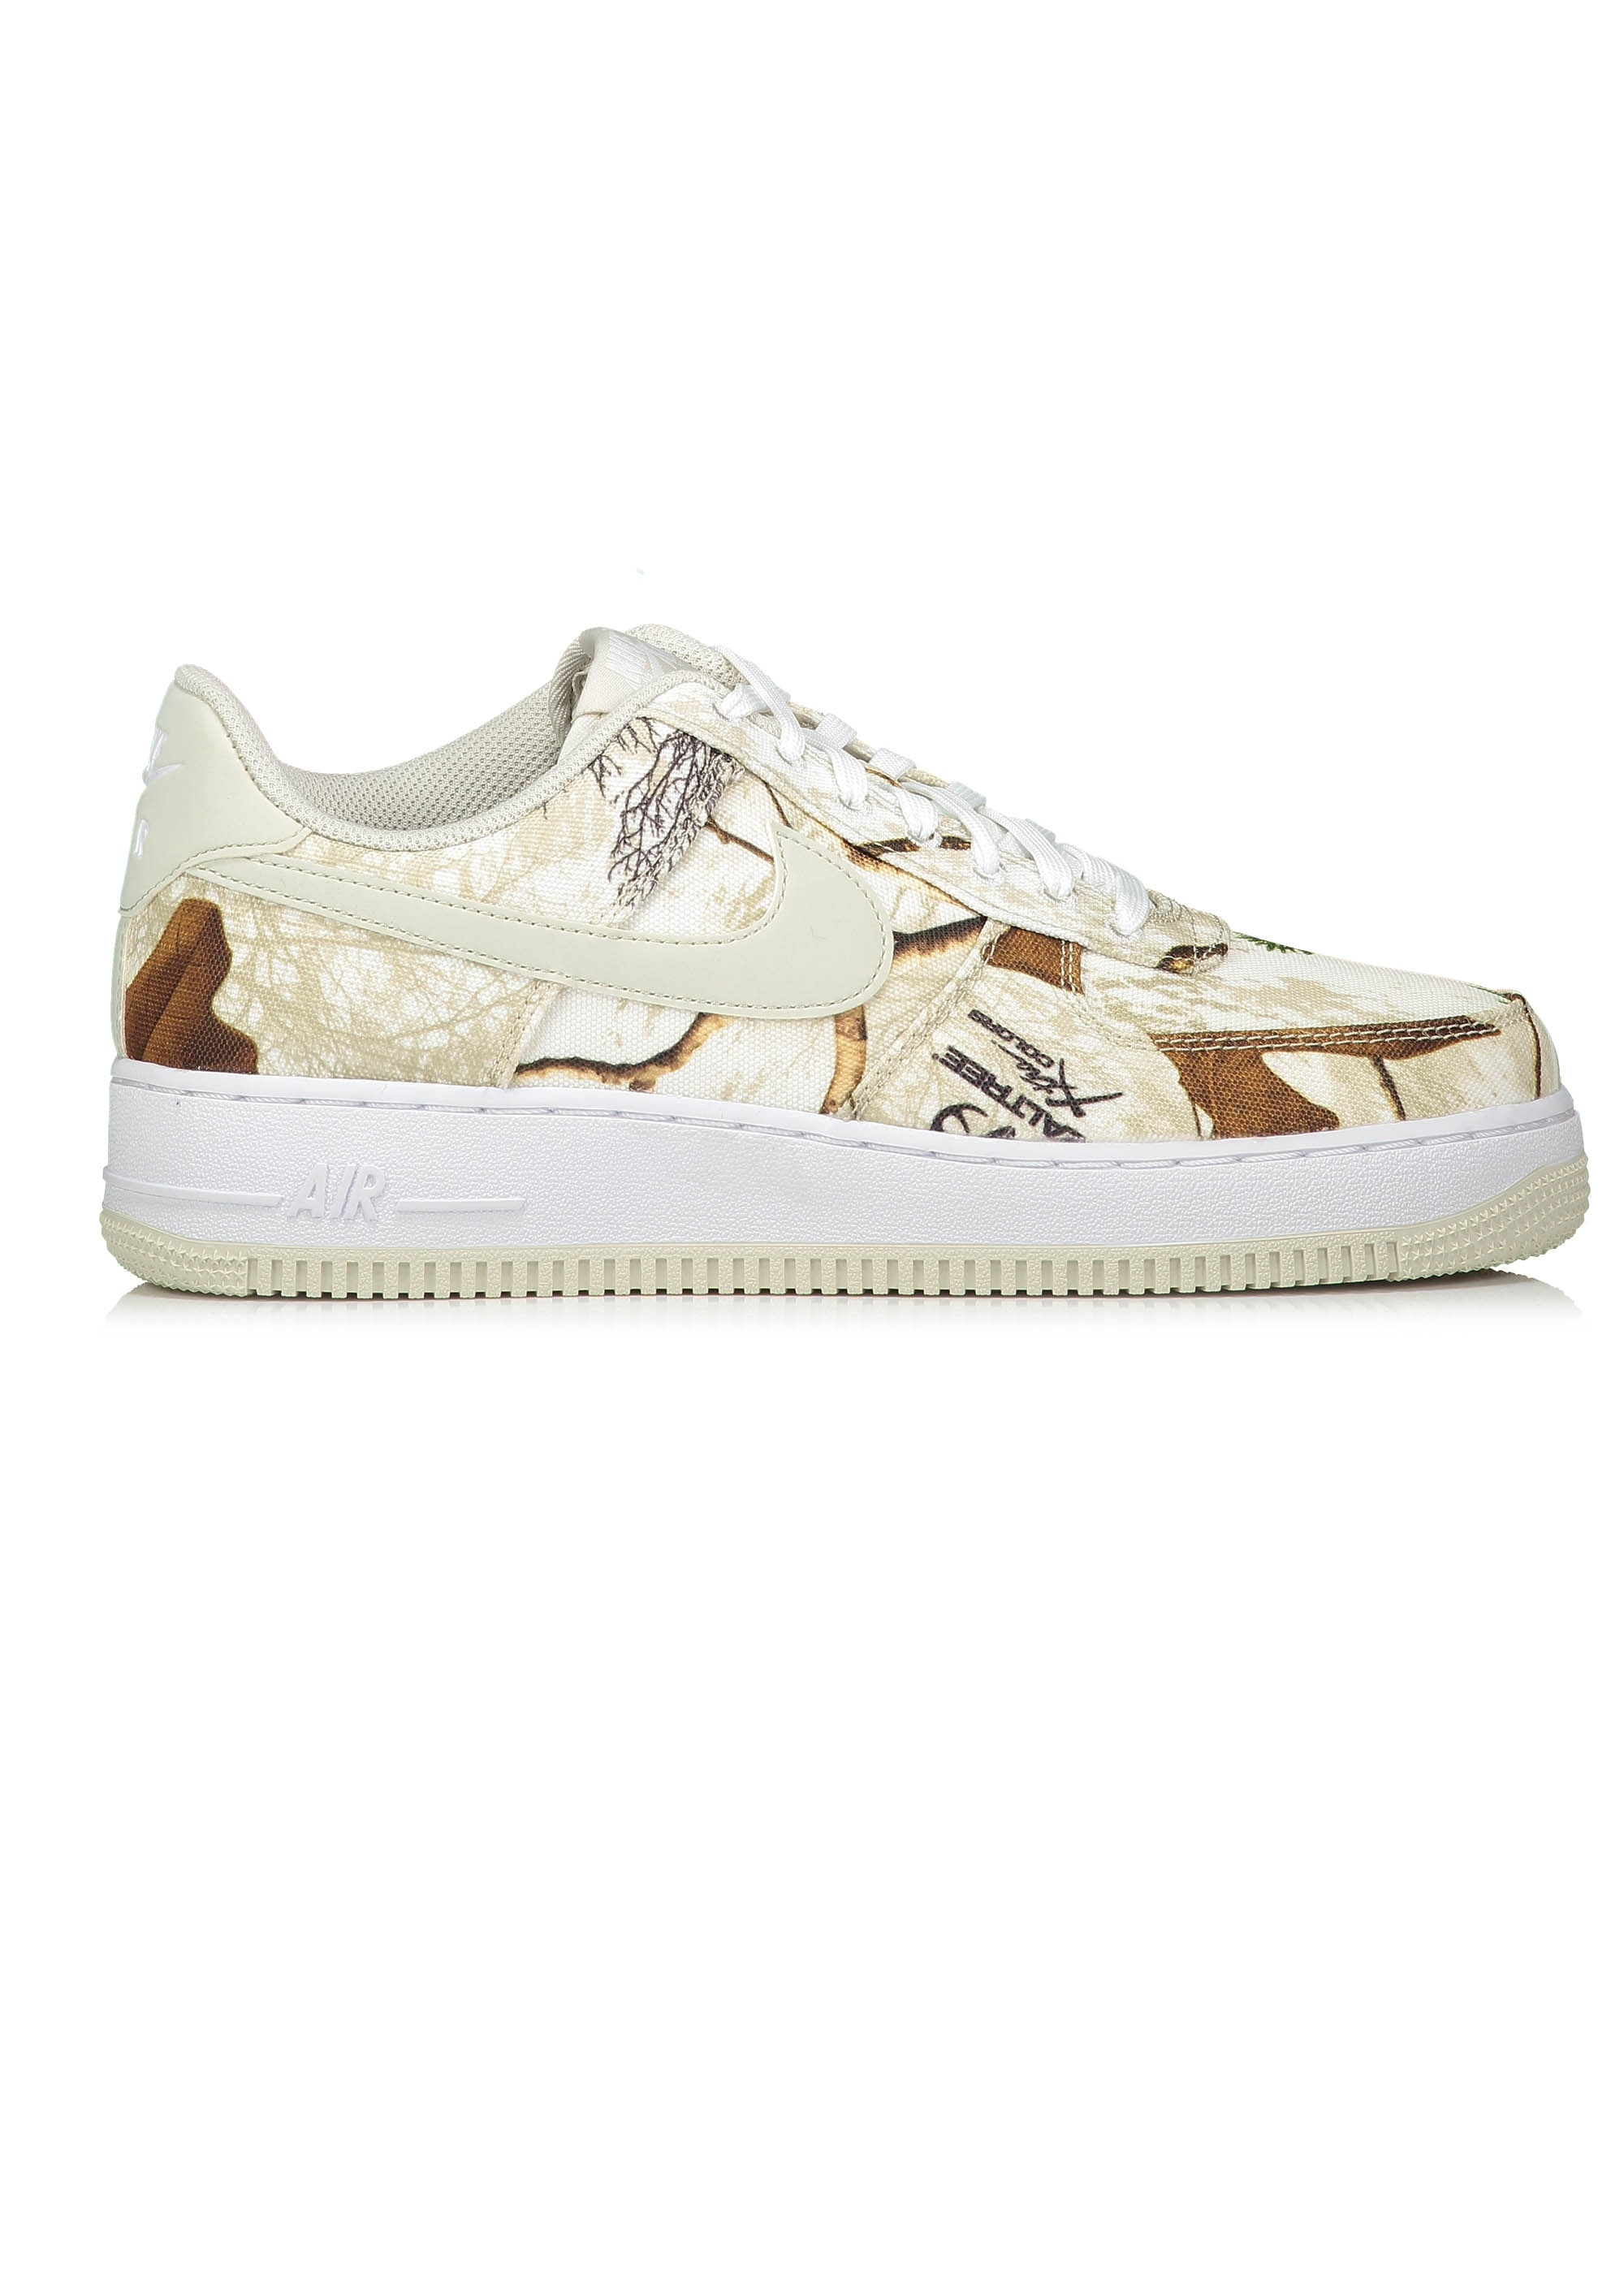 the best attitude 344f5 3f076 Realtree Air Force 1 07 LV8 3 - White